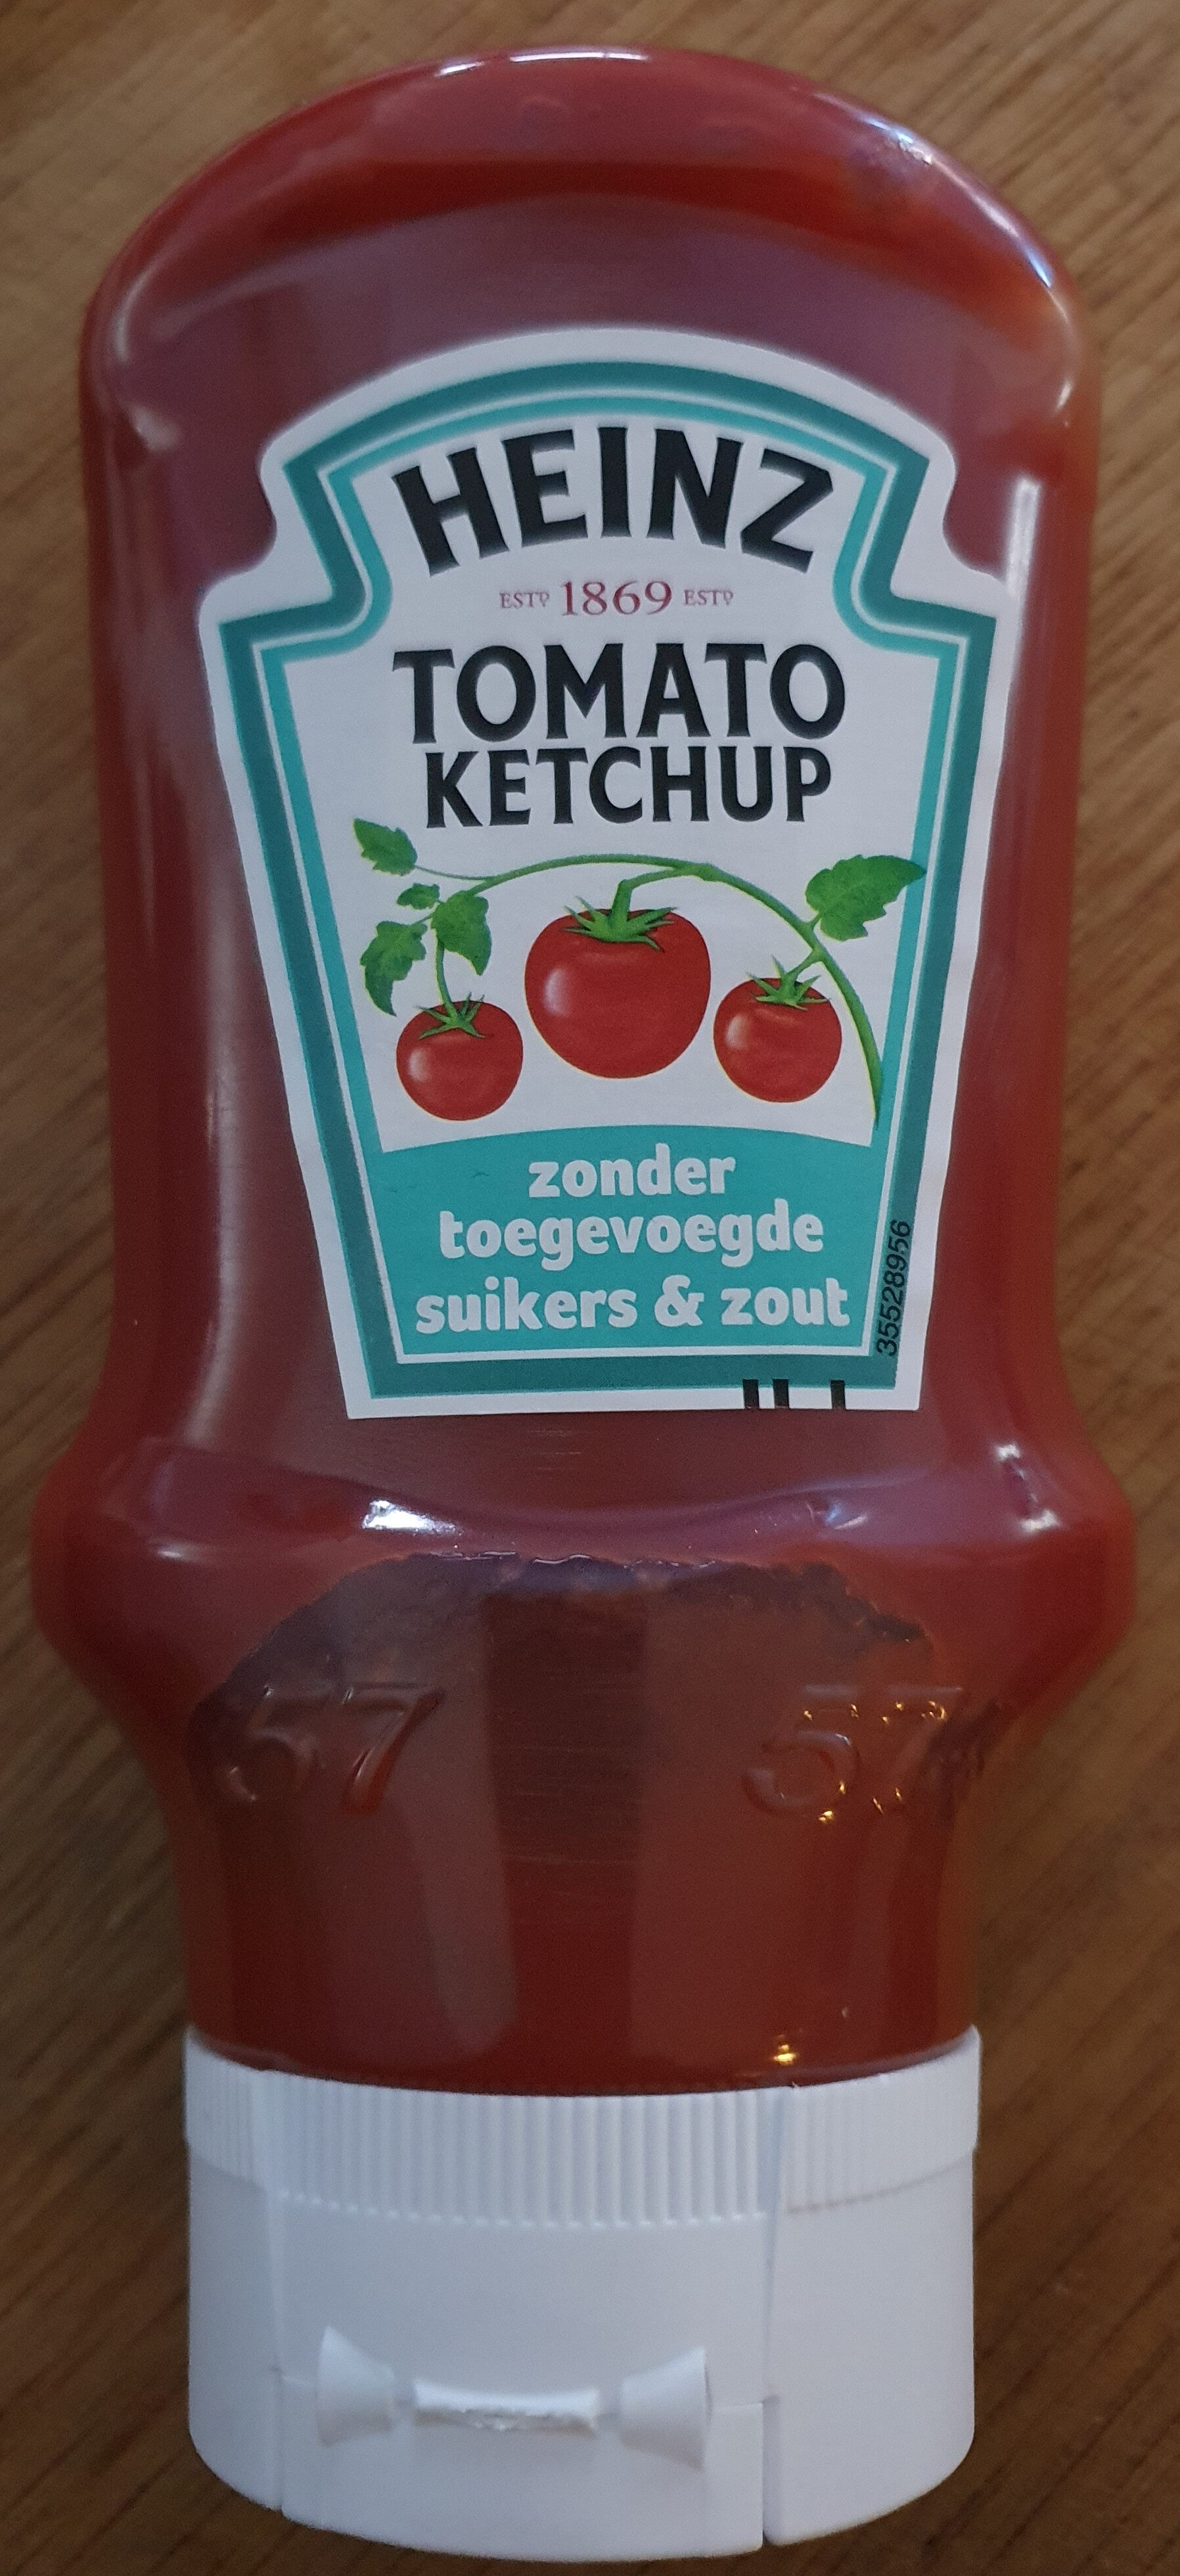 Tomato Ketchup, zonder toegevoegde suikers & zout - Product - nl